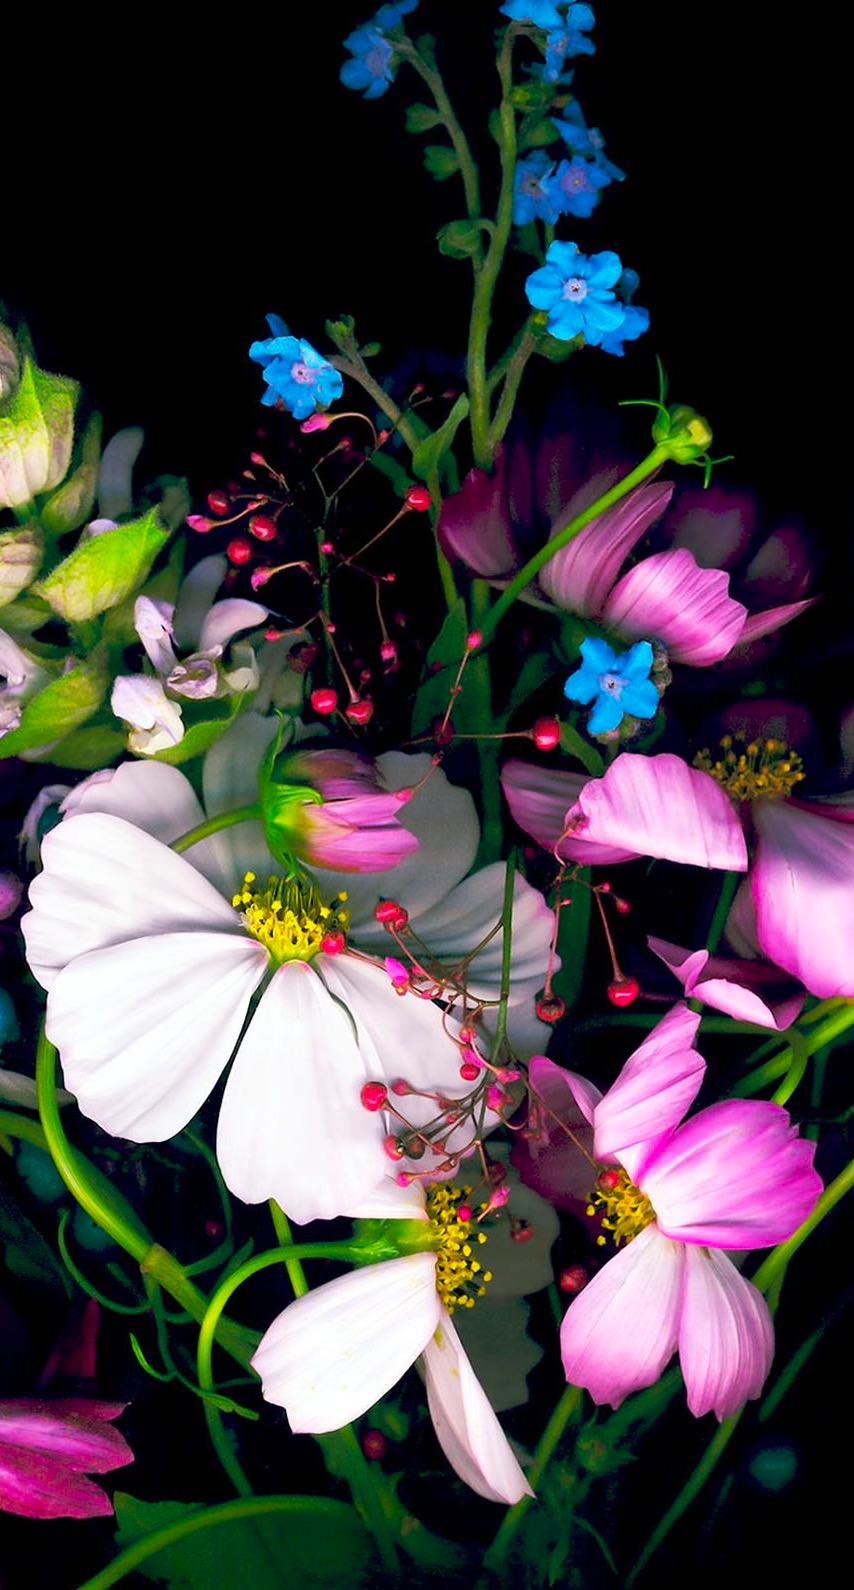 Floral Wallpaper For Iphone 5 Colorful Flower Black Wallpaper Sc Iphone6s